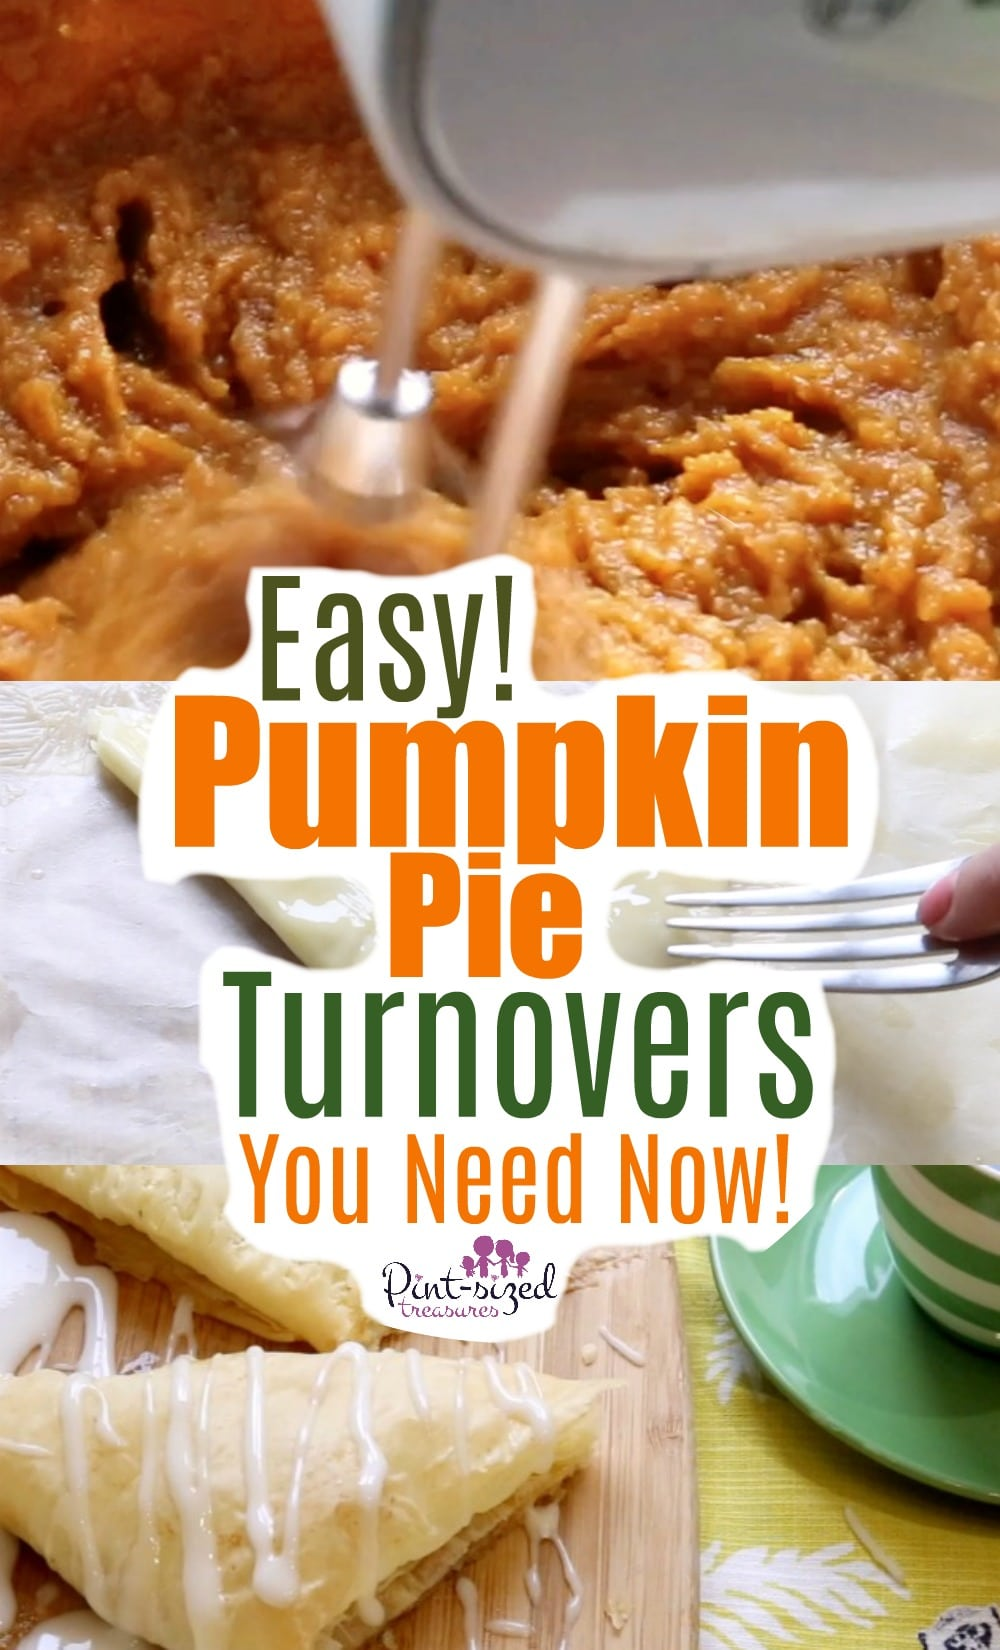 How to Make Pumpkin Pie Turnovers